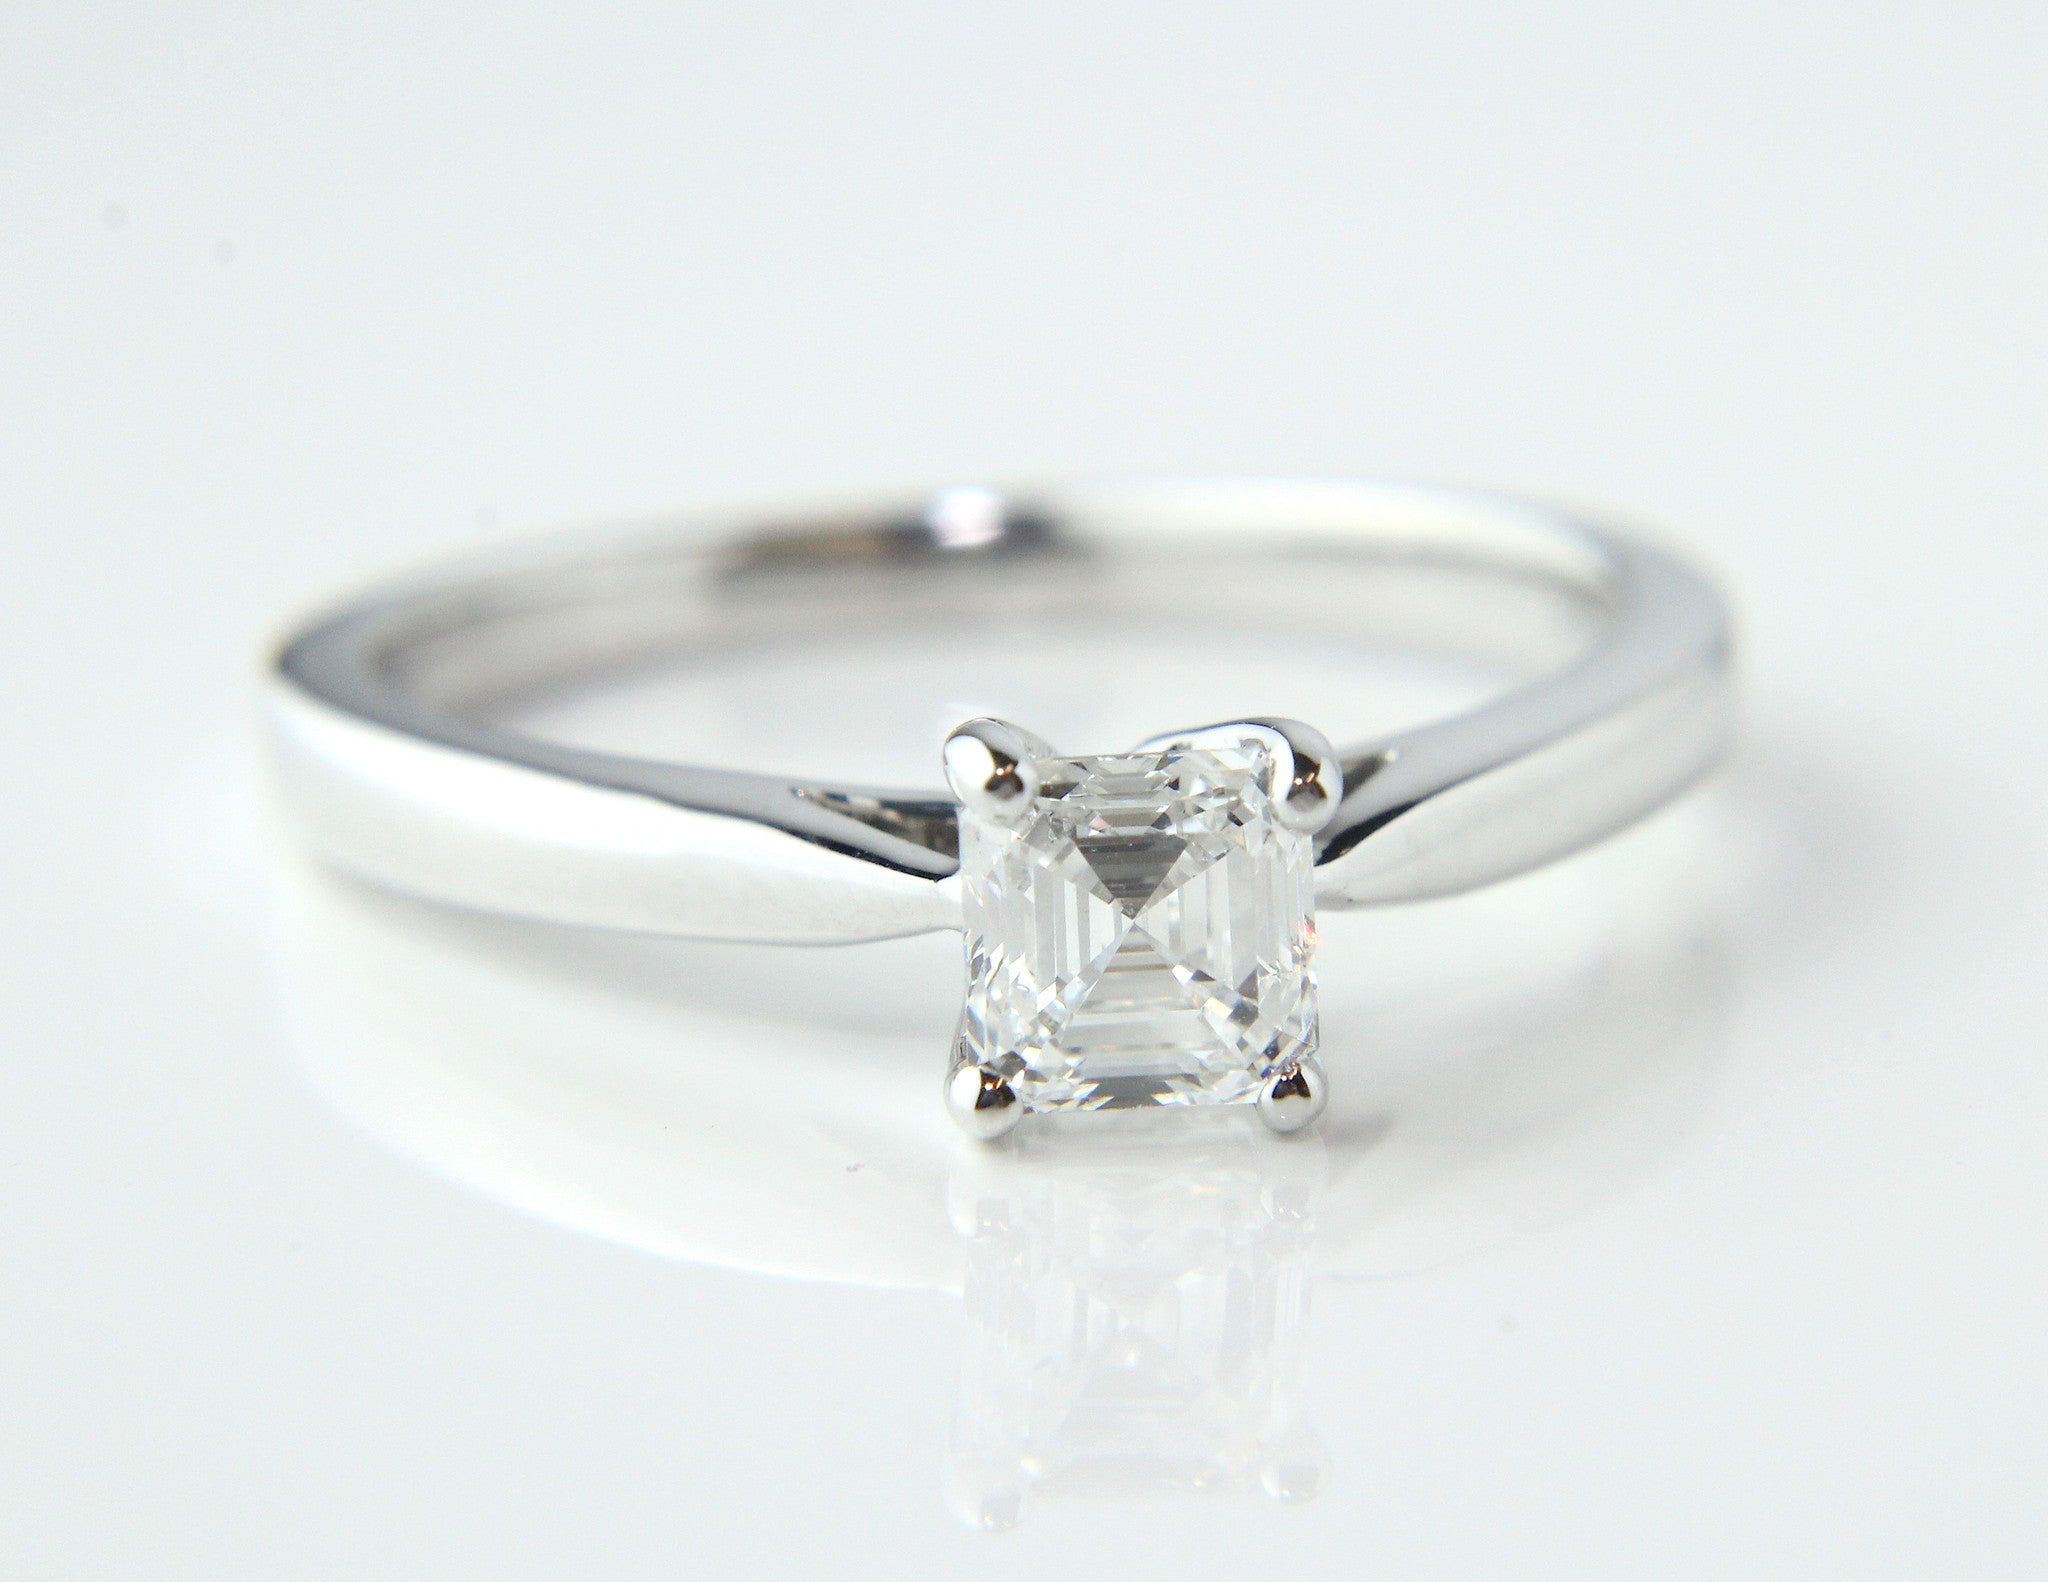 j deco engagement ring platinum id at rings for asscher diamond z jewelry cut in sale art